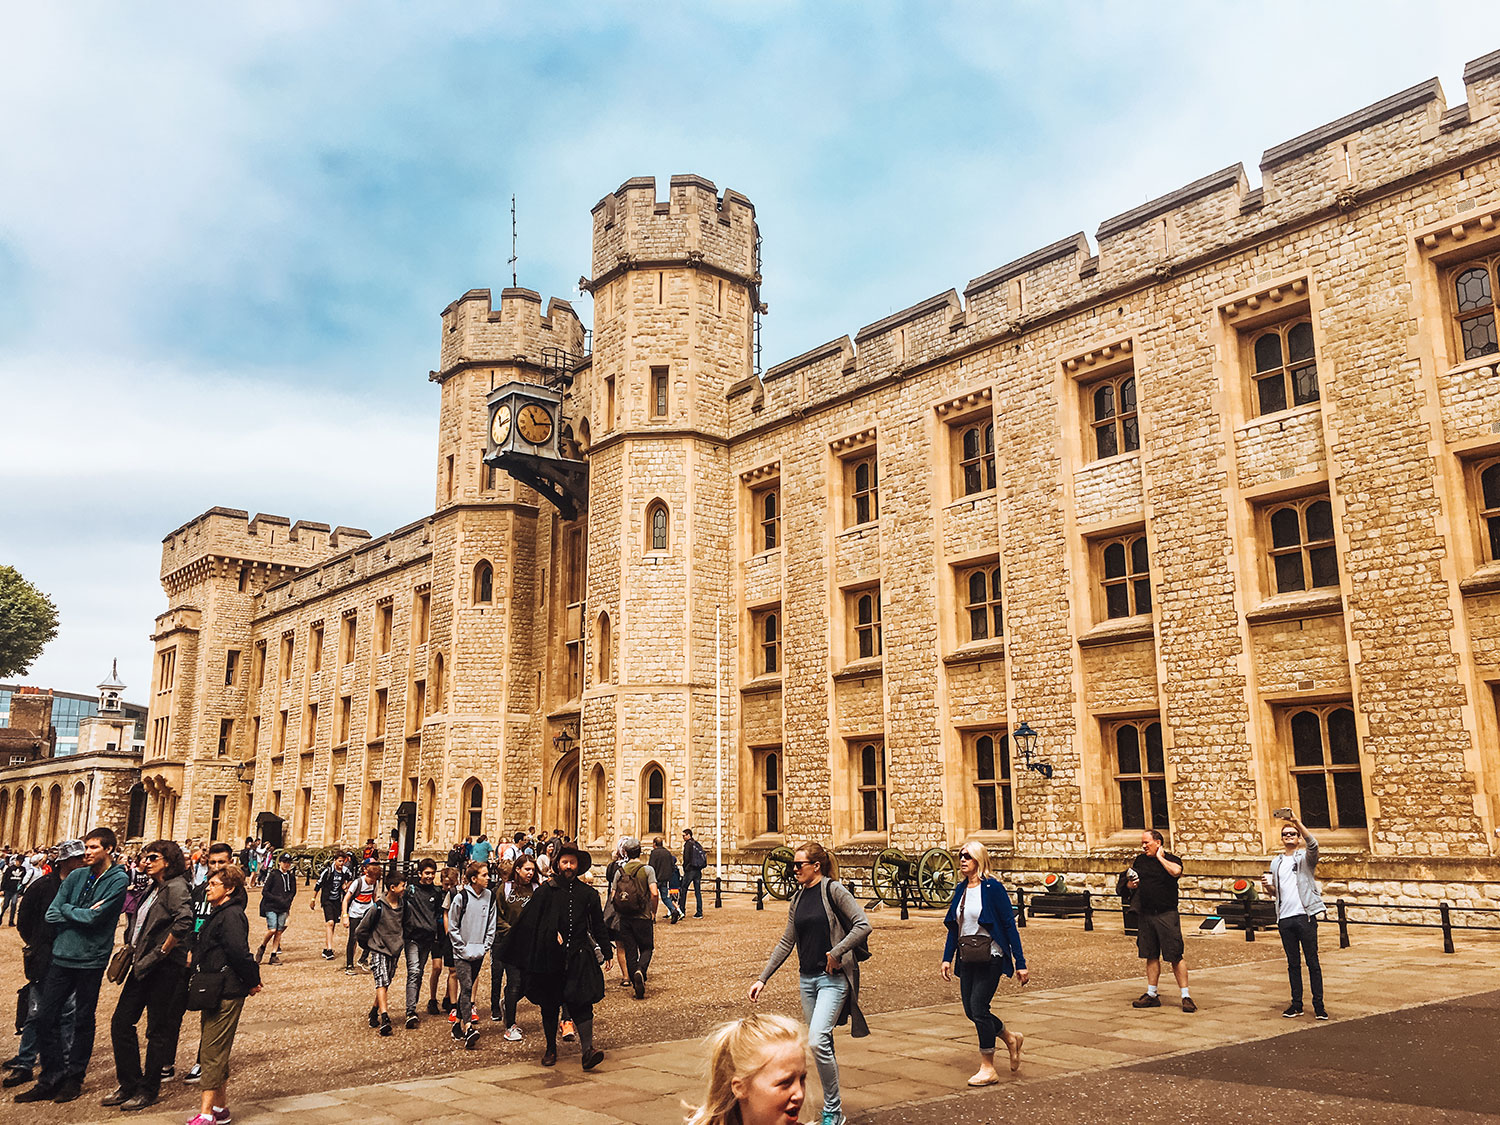 london, great britain, uk, united kingdo, tower of london, history, palaces, british palaces, british castles, wanderlust, traveler, solo traveler, girl solo travel